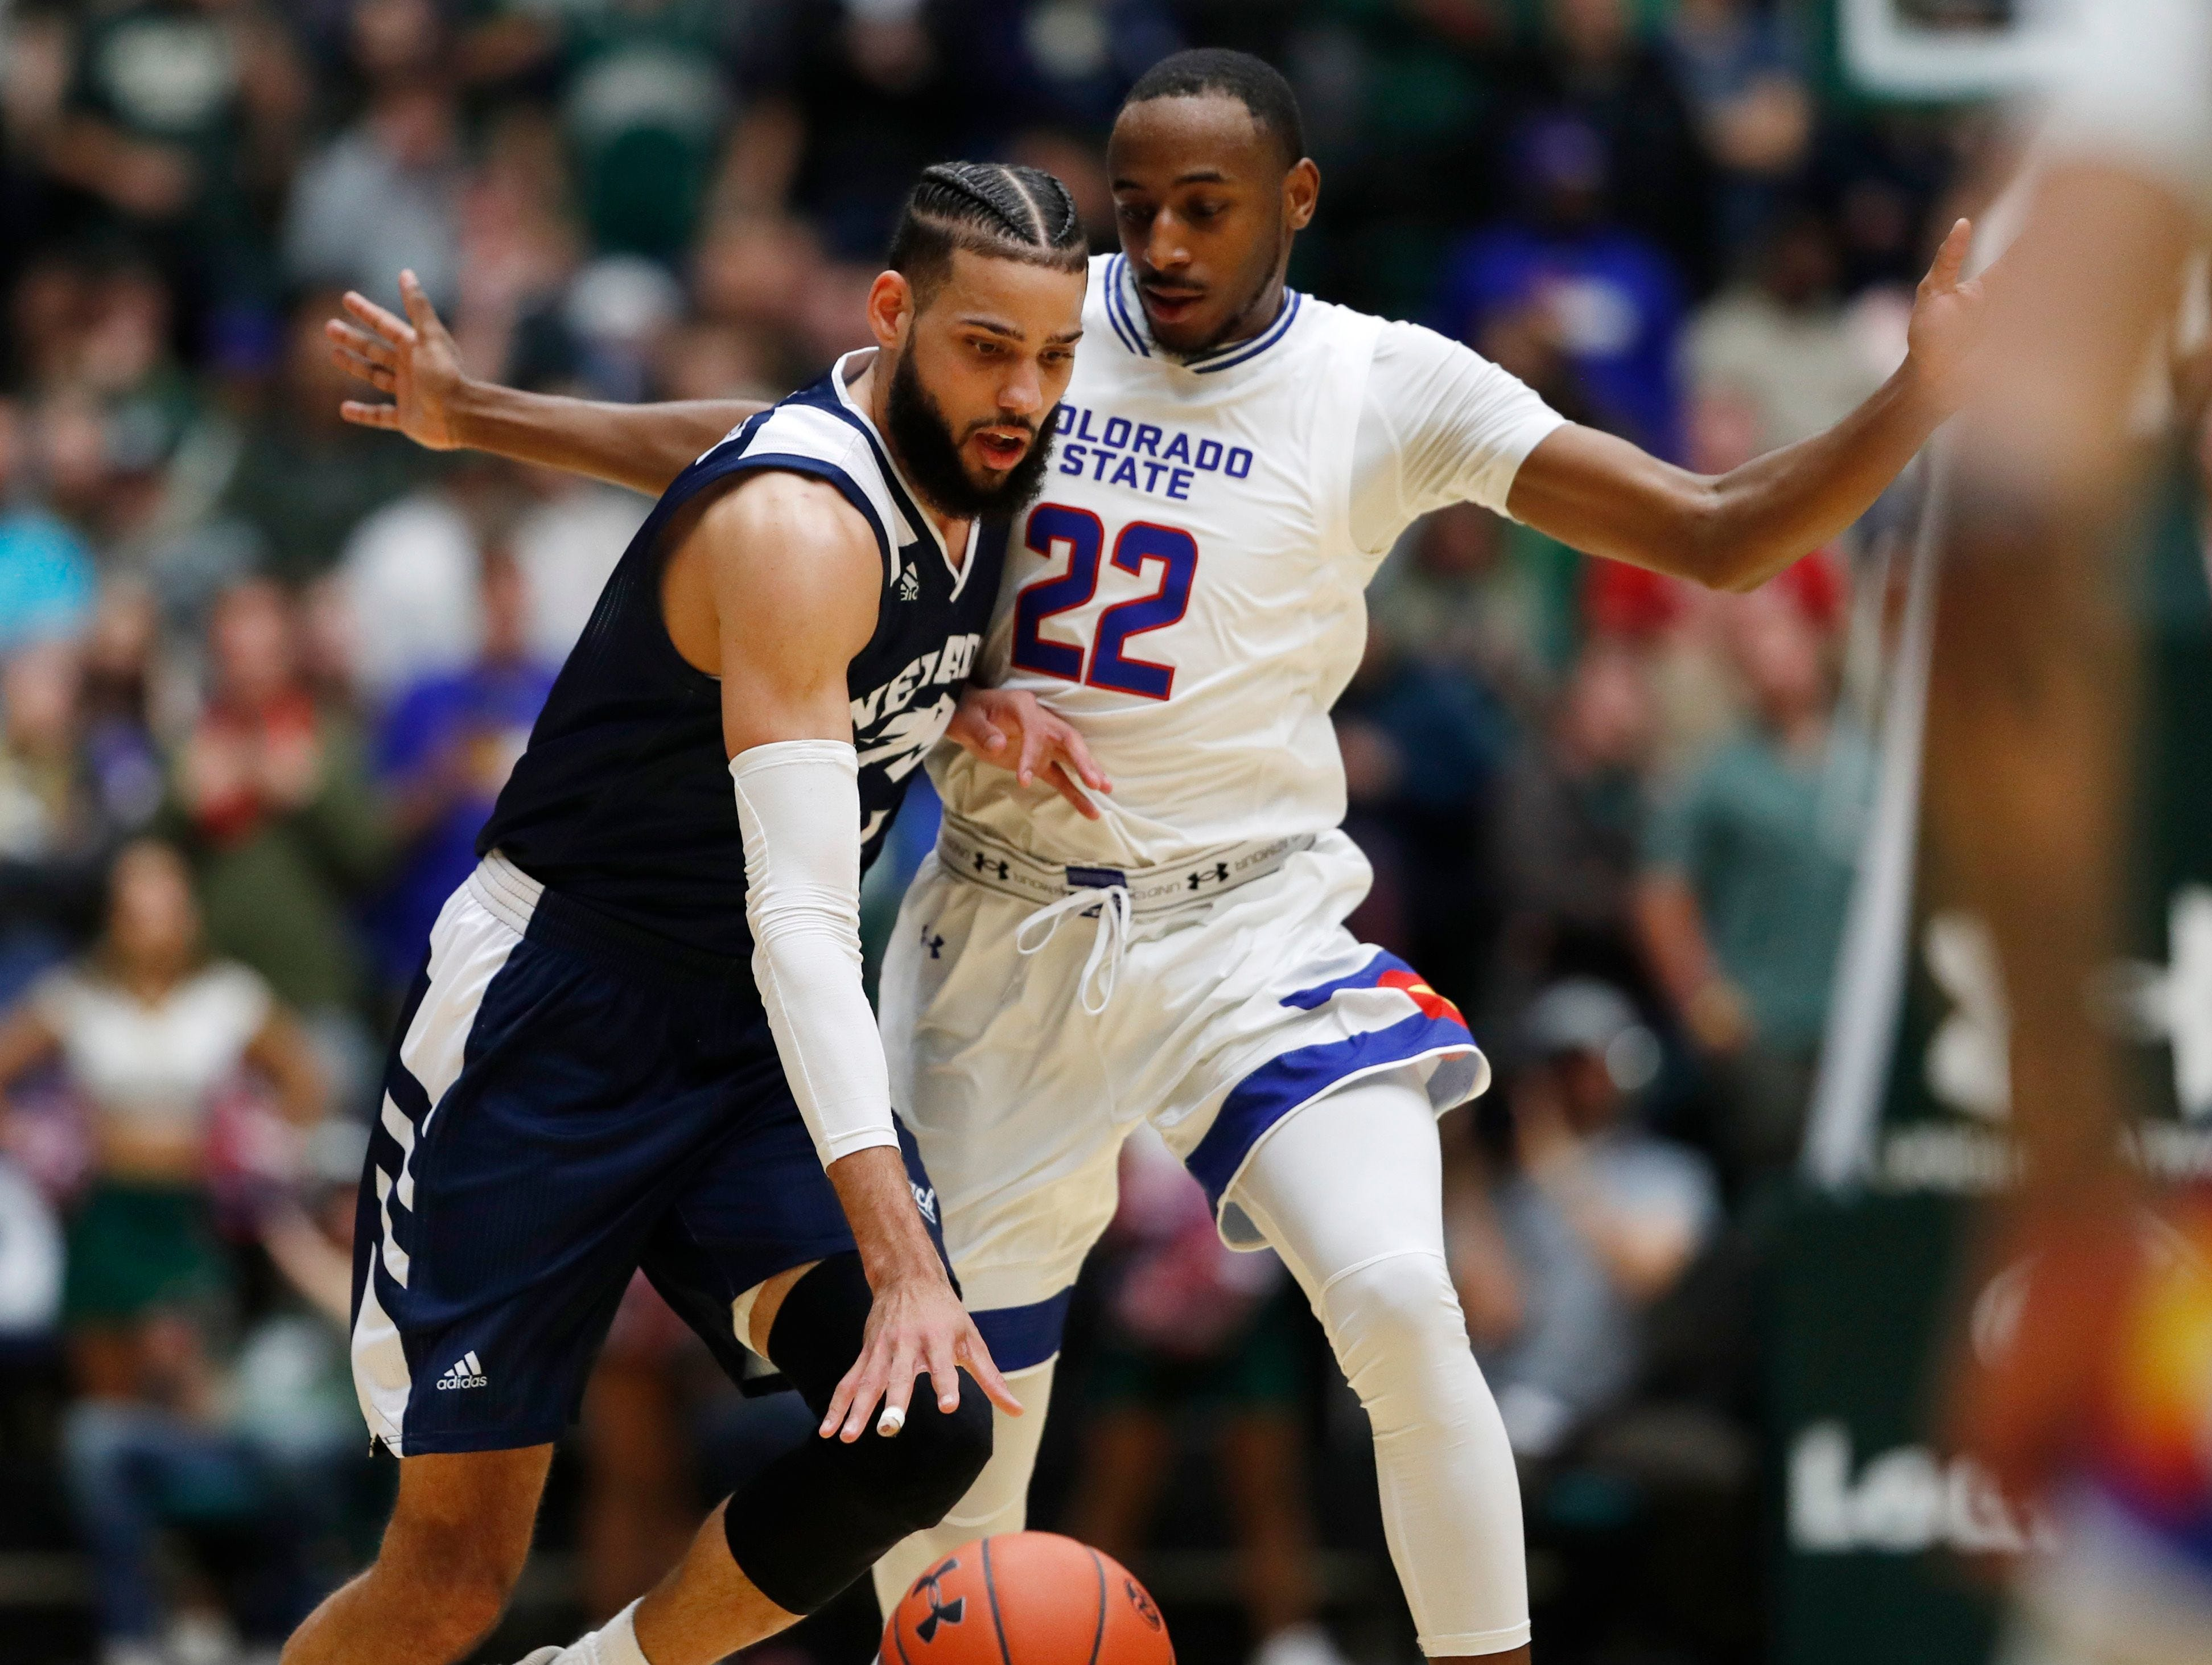 Nevada forward Cody Martin, left, is defended by Colorado State guard J.D. Paige on Feb. 6, 2019, in Fort Collins, Colo. Nevada won 98-82.